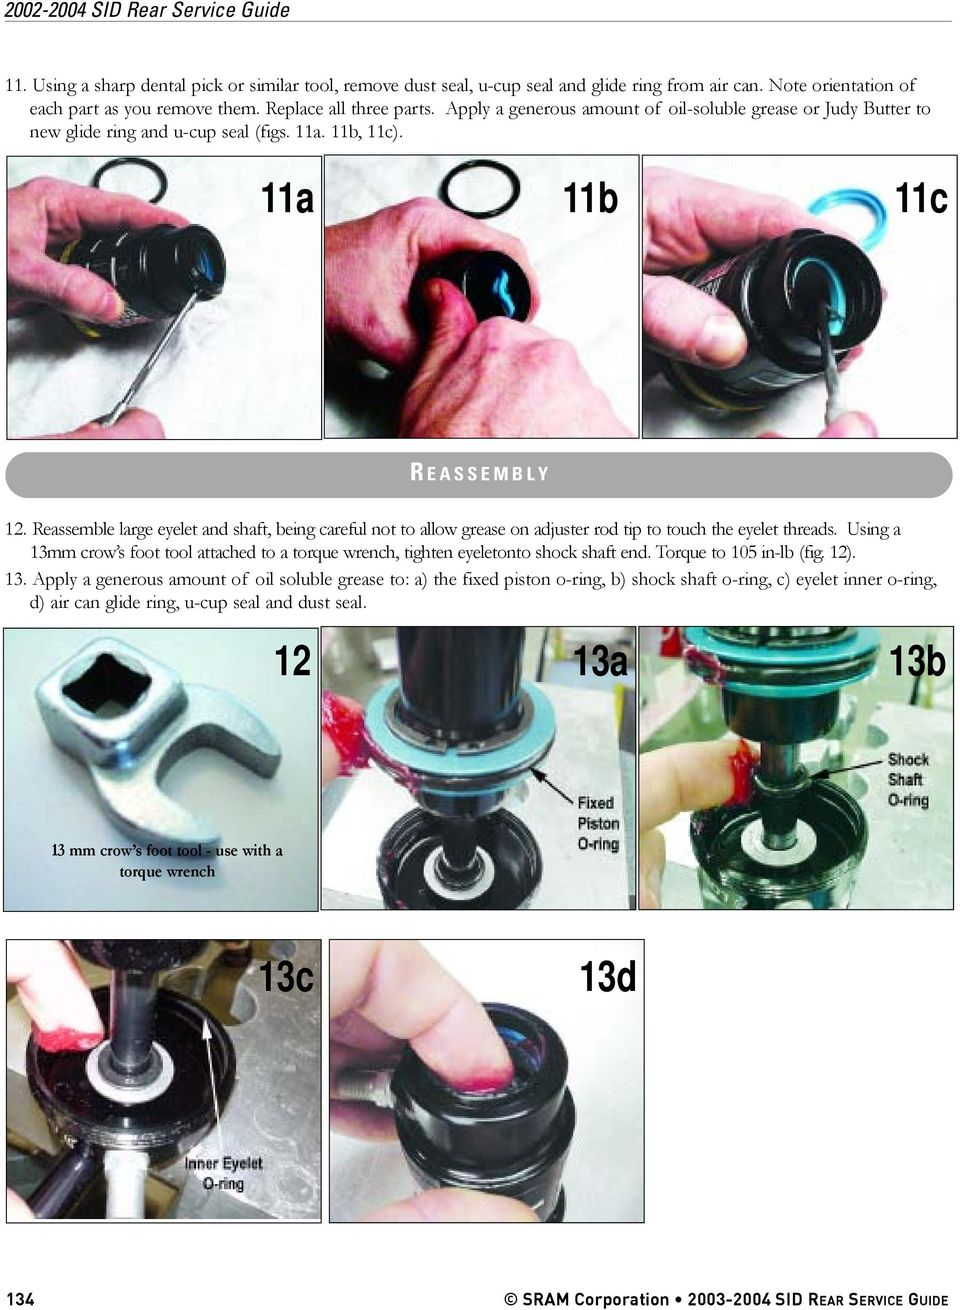 Reassemble large eyelet and shaft, being careful not to allow grease on adjuster rod tip to touch the eyelet threads.